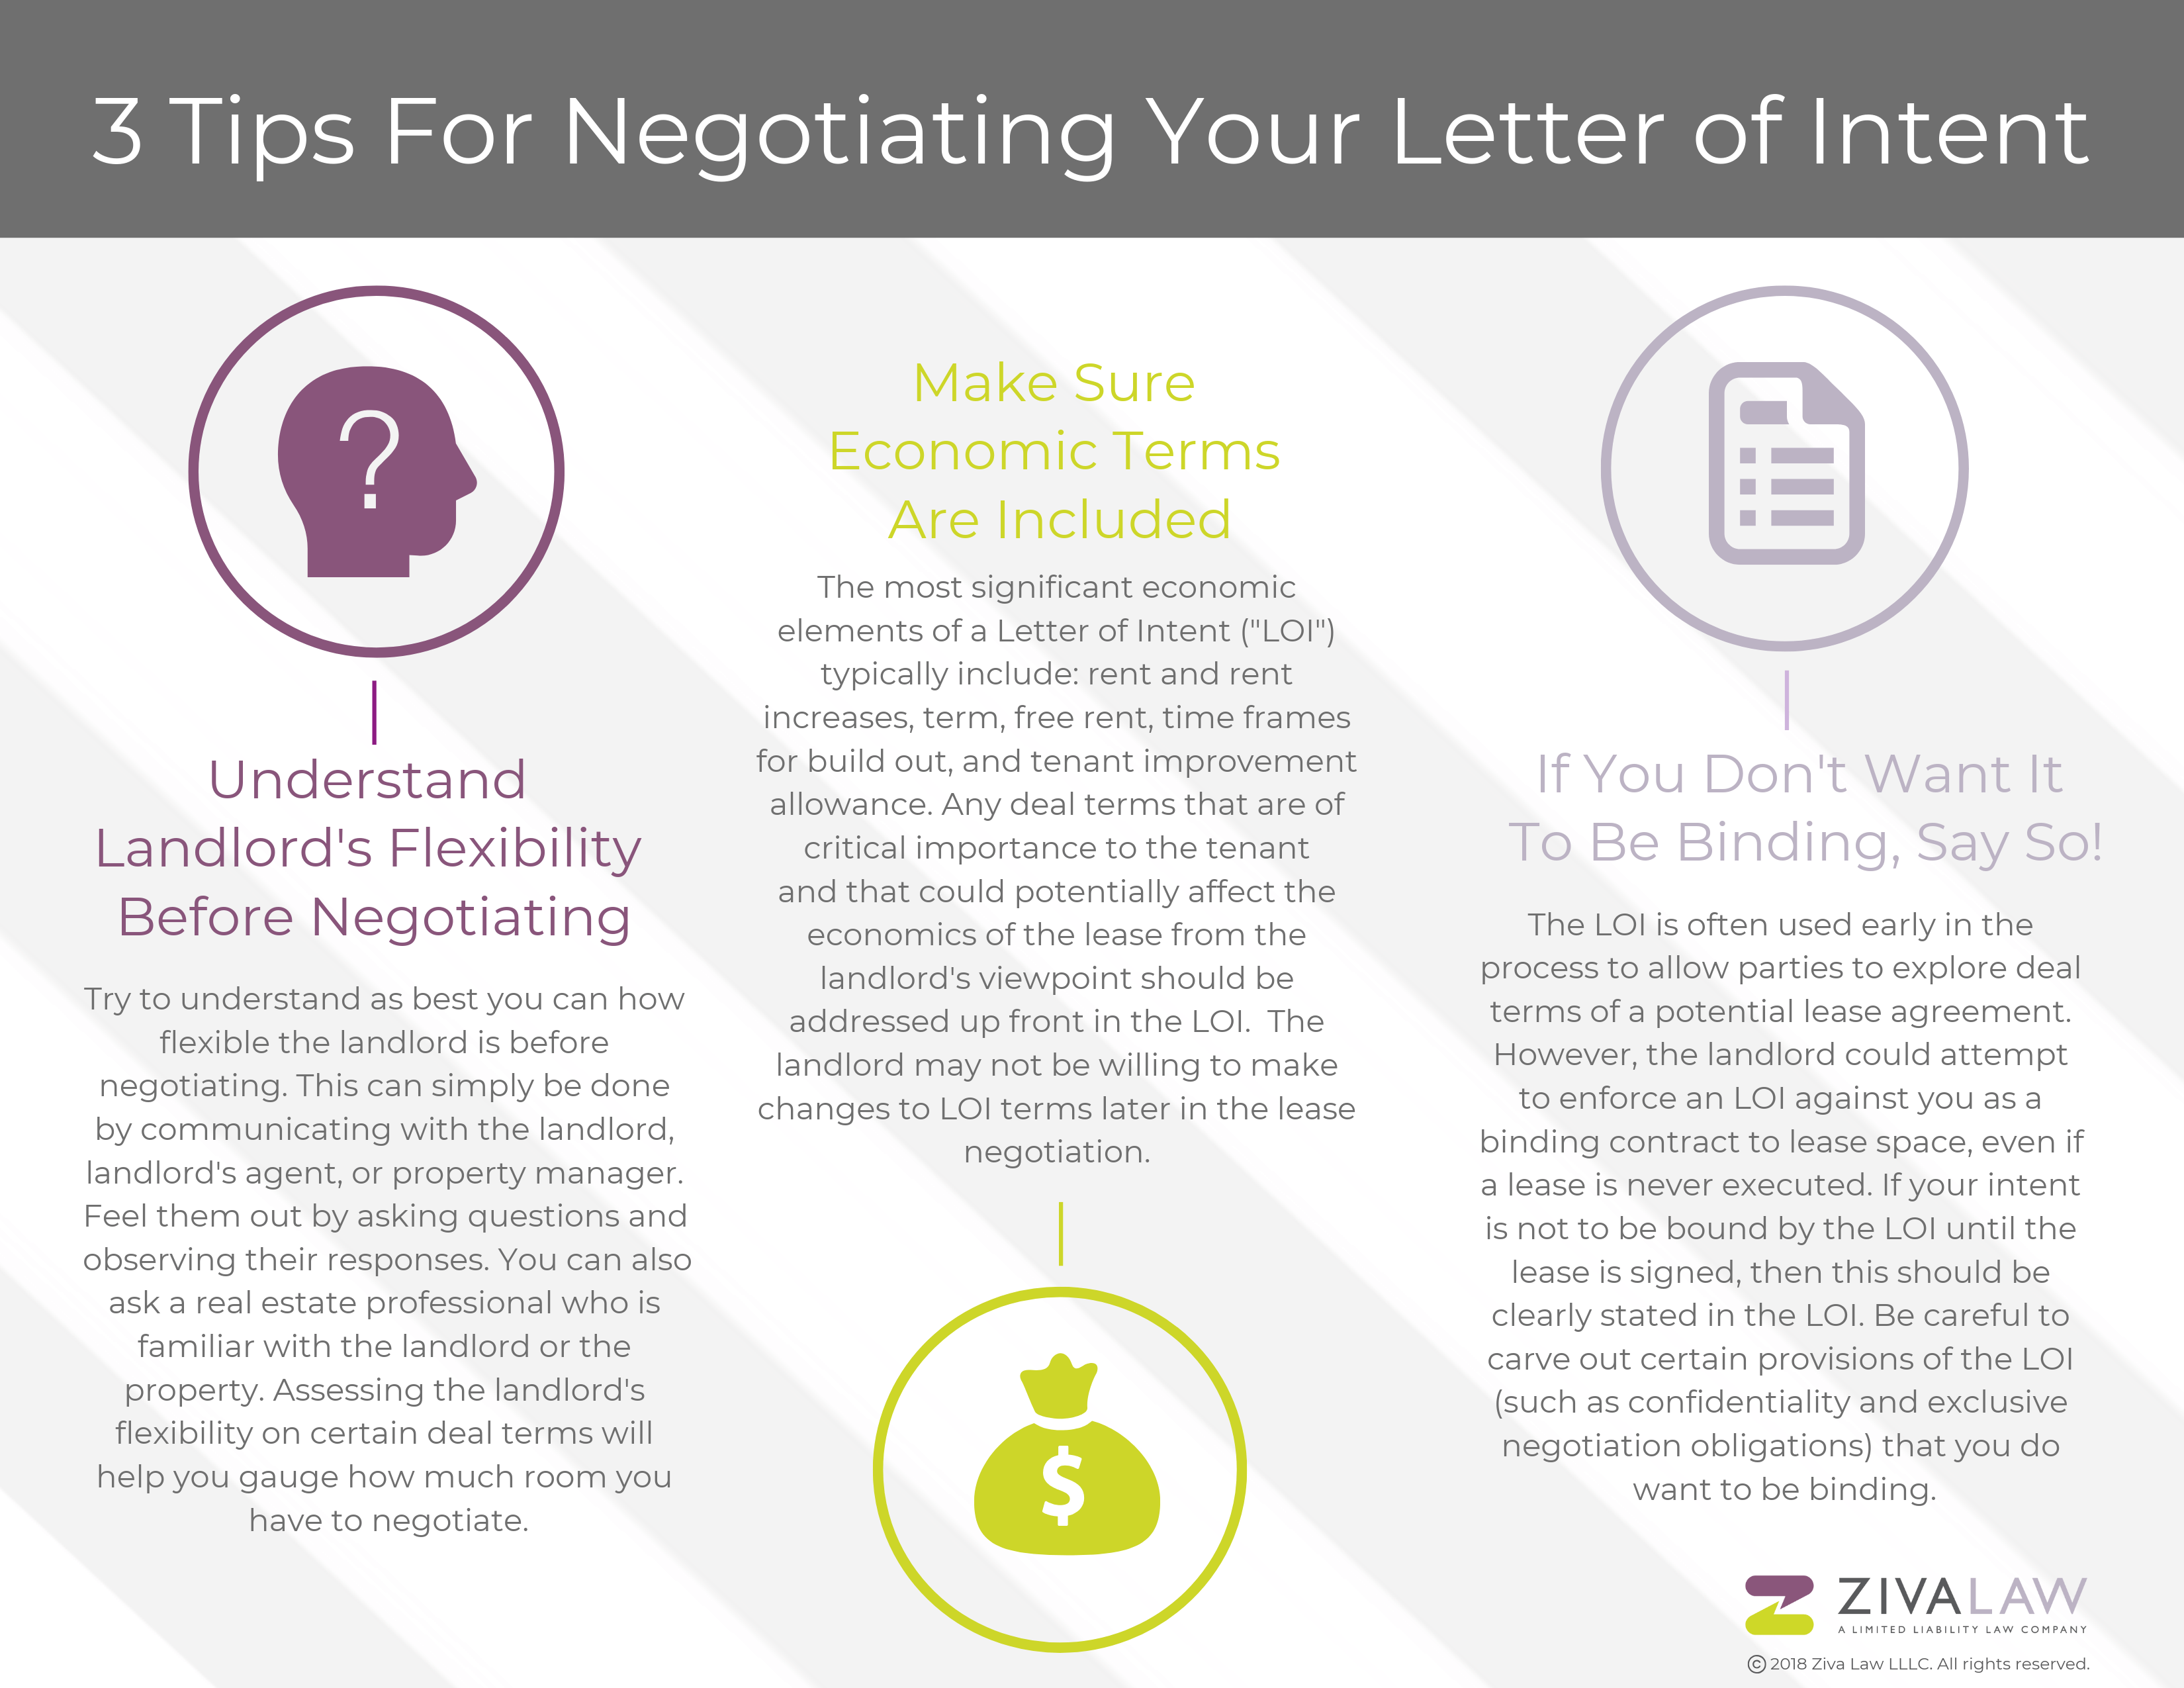 3 Tips for Negotiationg Your Letter of Intent_copyright